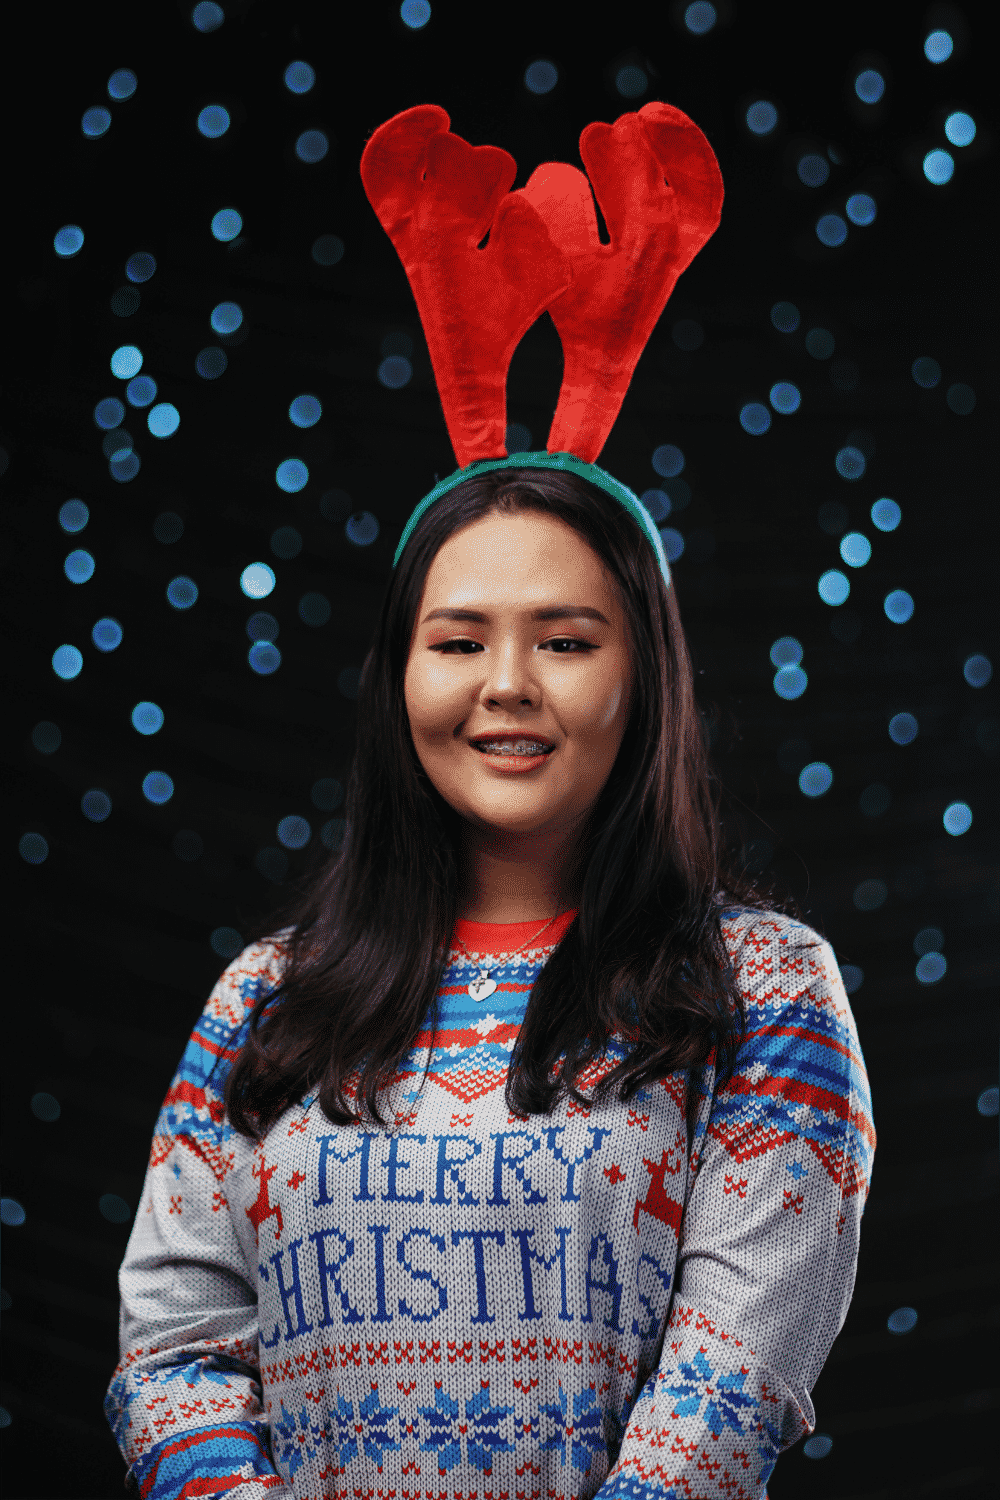 An employee wears an ugly Christmas Sweater with reindeer antlers for a virtual office holiday party